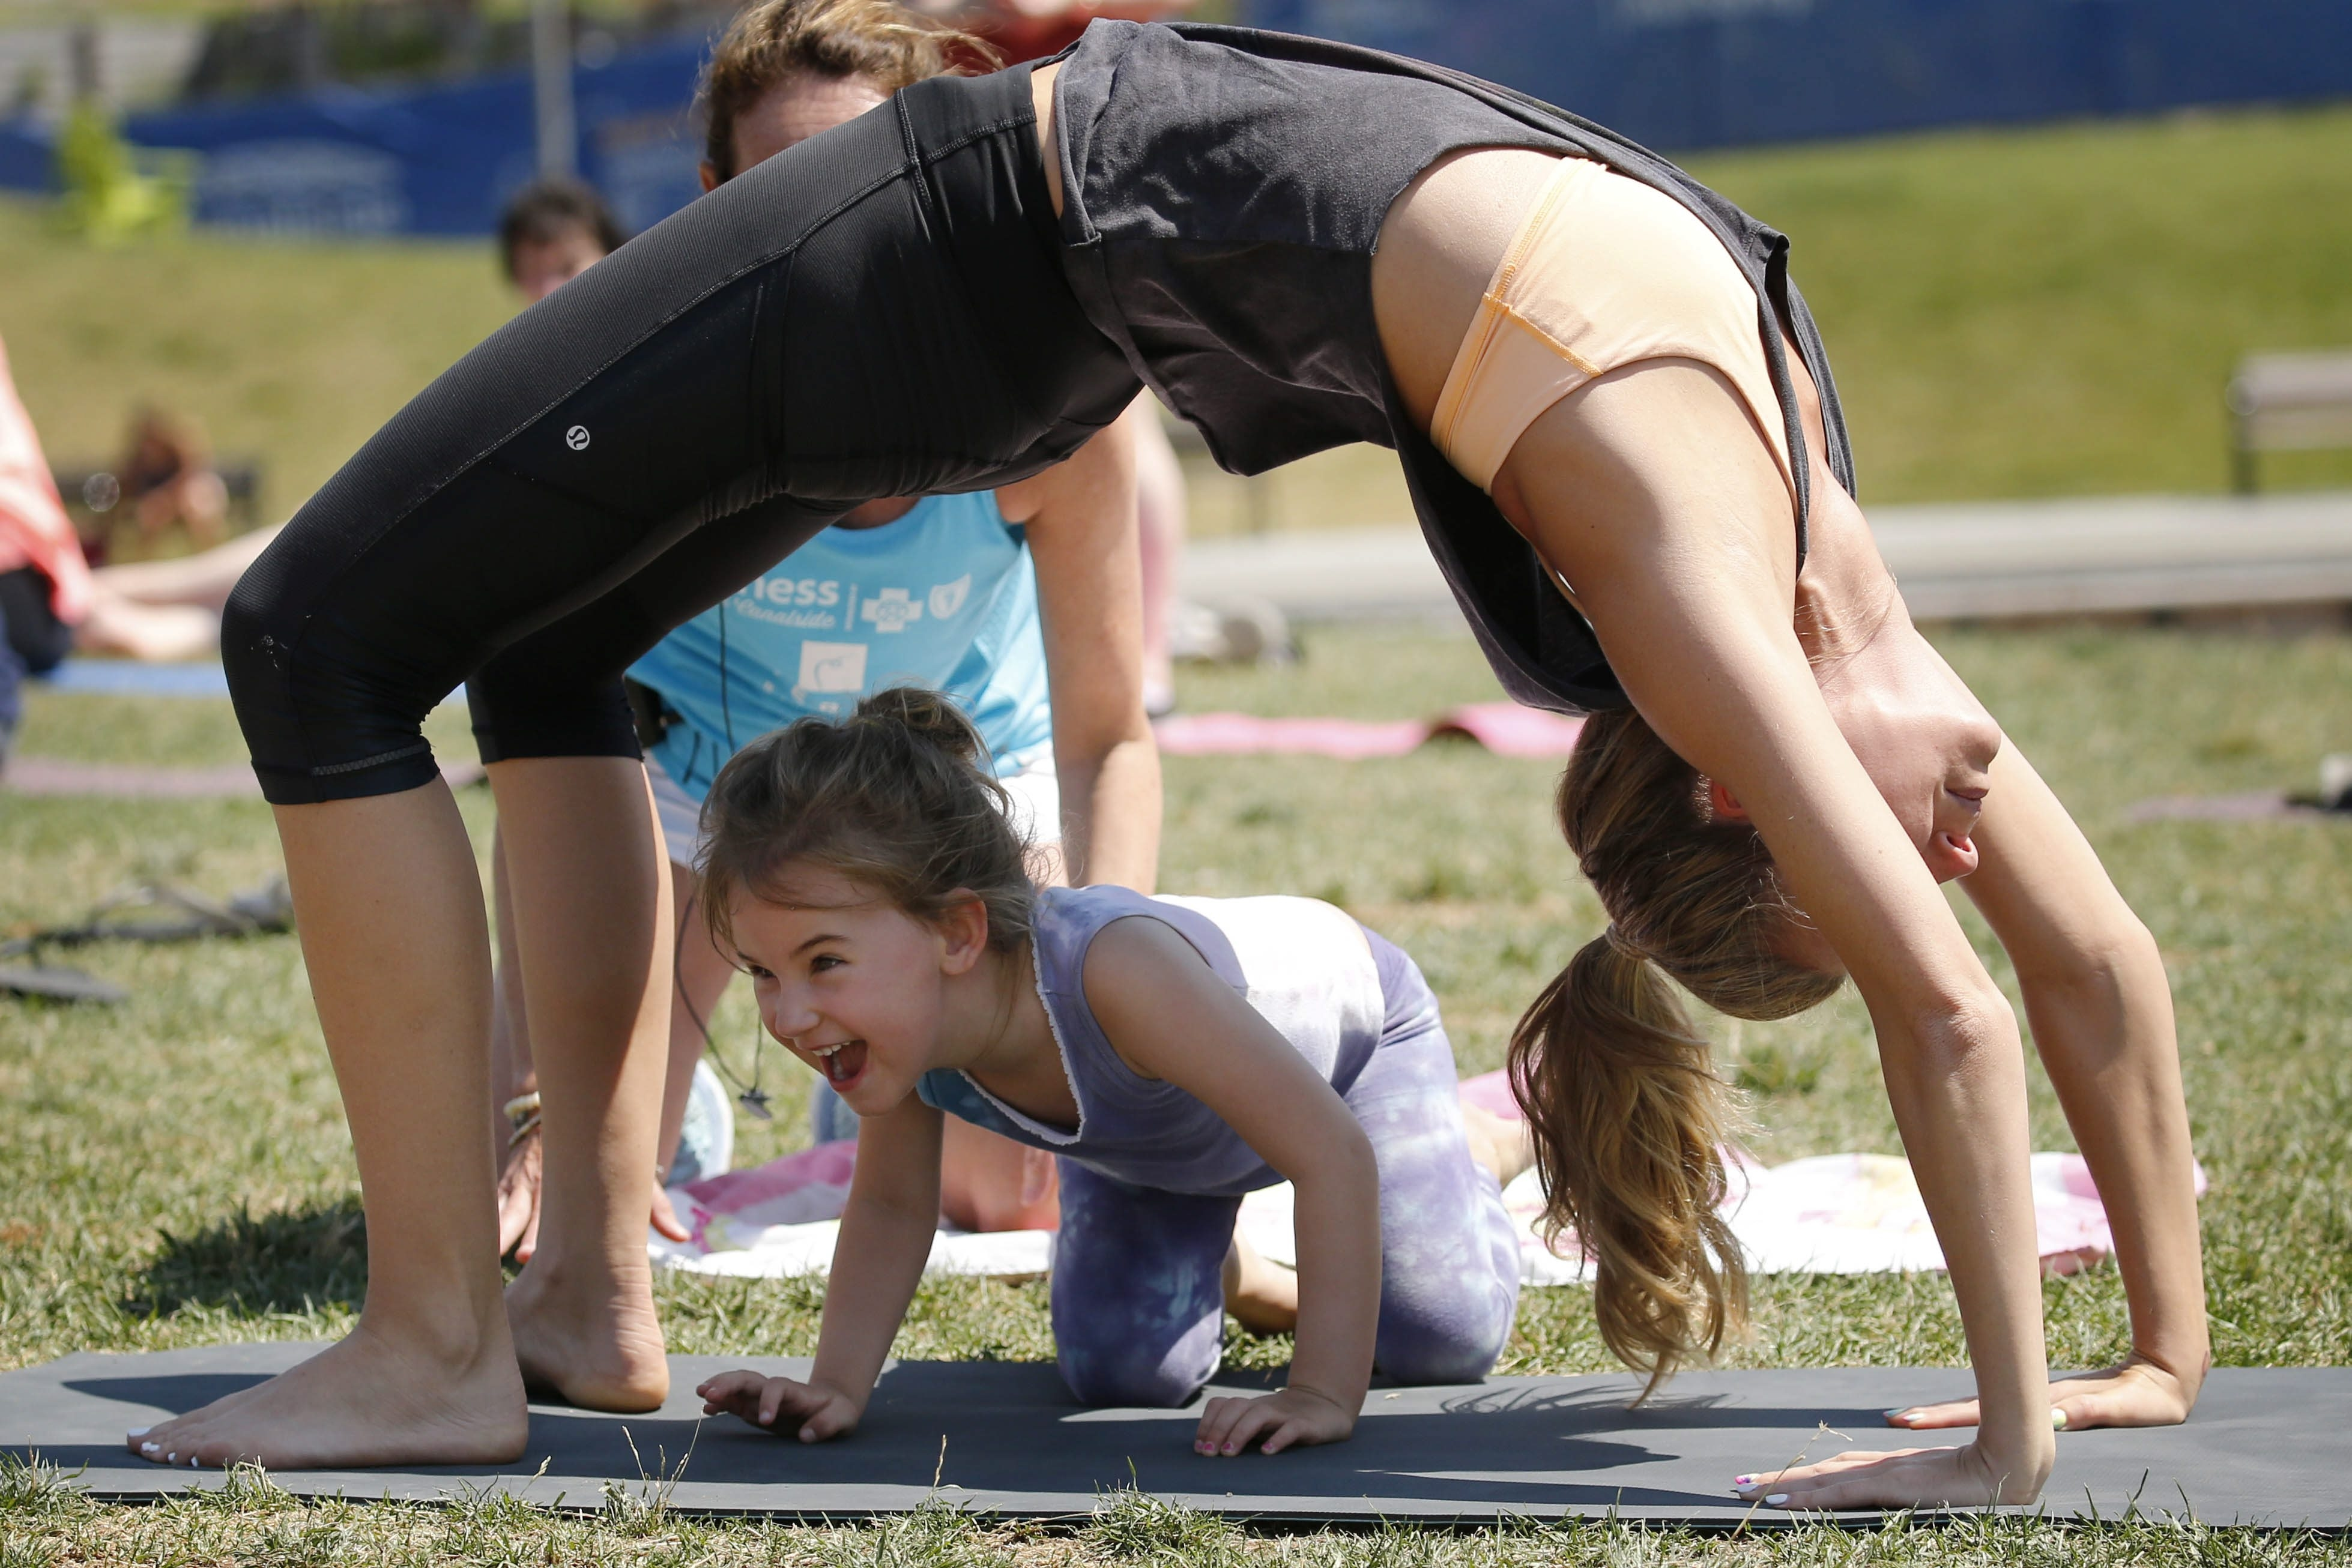 Teresa Falsone does a bridge pose while her daughter Francesca, 4, scampers underneath her to great amusement during a session of Jody Quinn's family yoga class at Canalside. (Derek Gee/Buffalo News)